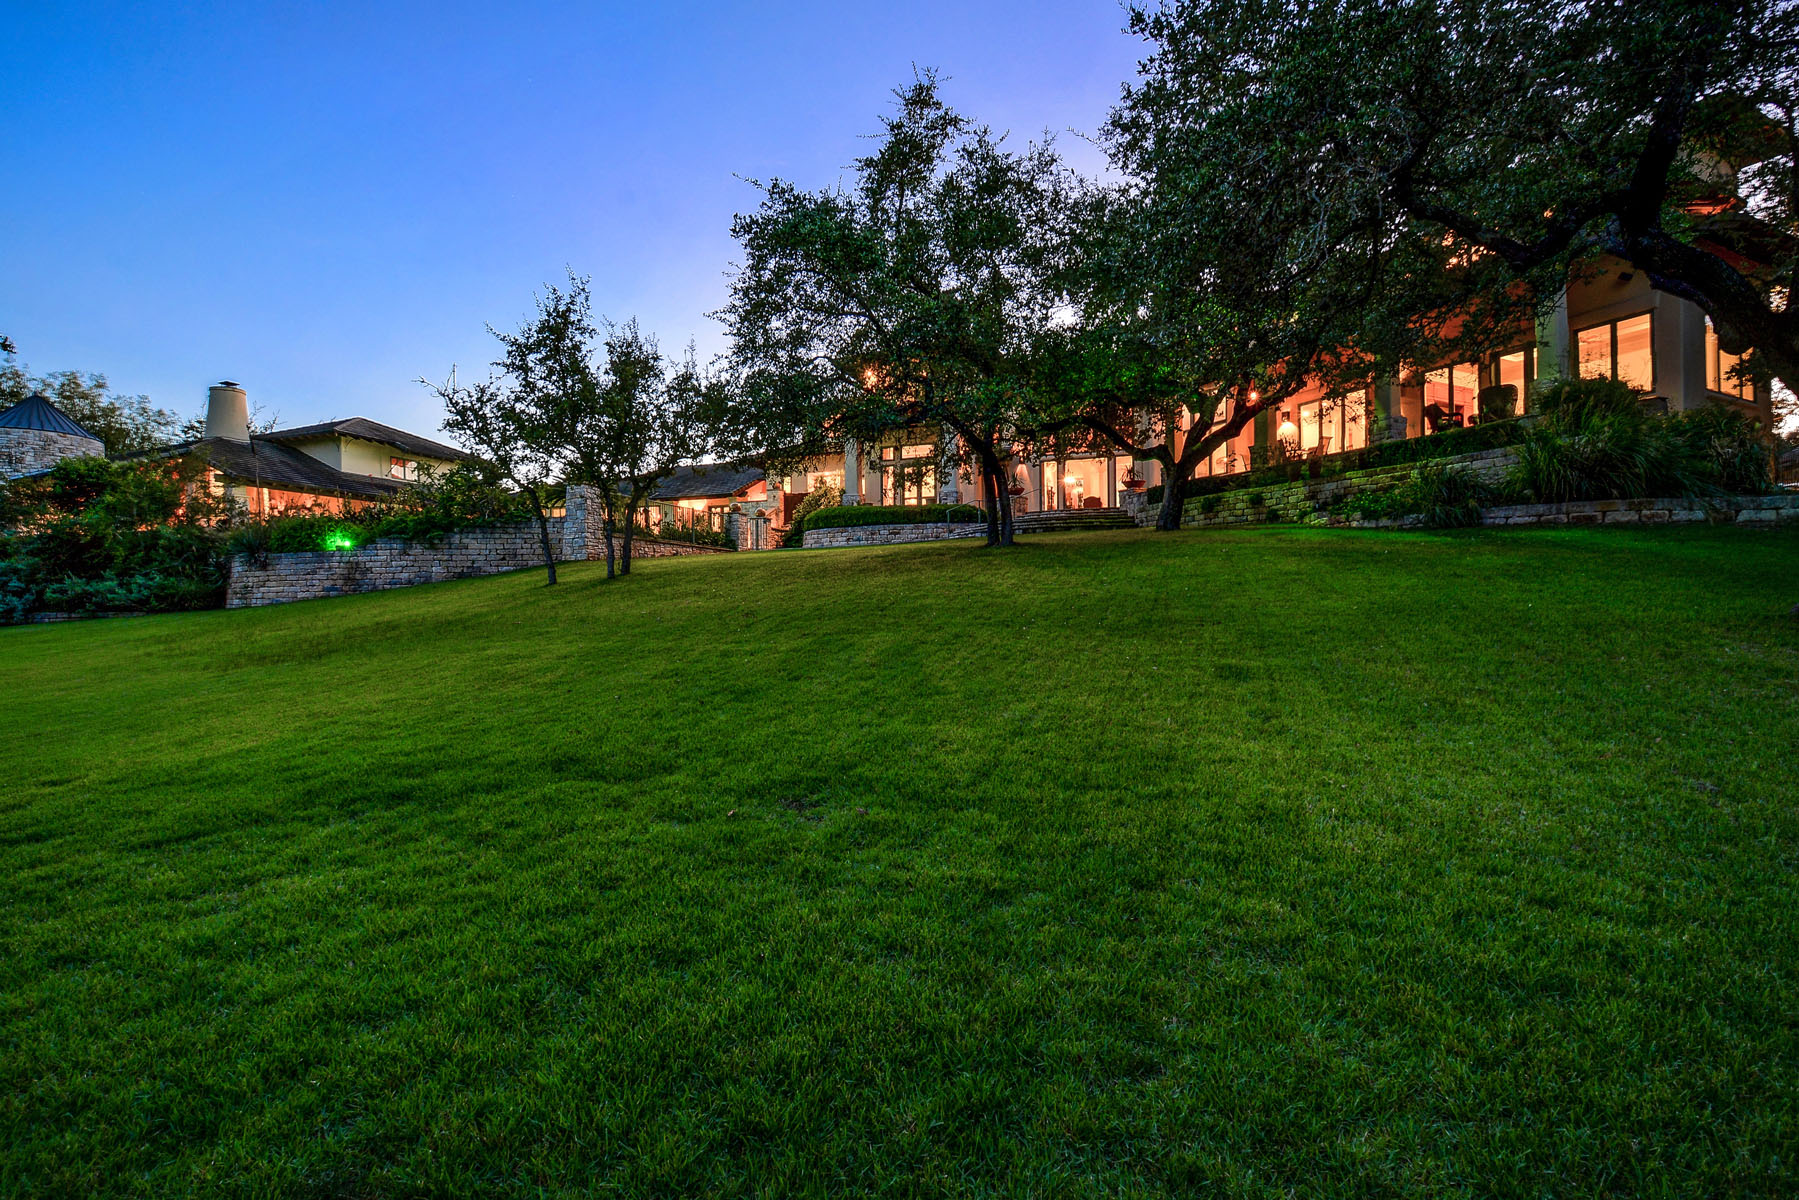 Additional photo for property listing at Sprawling Barton Creek Estate 8606 Navidad Dr Austin, Texas 78735 United States